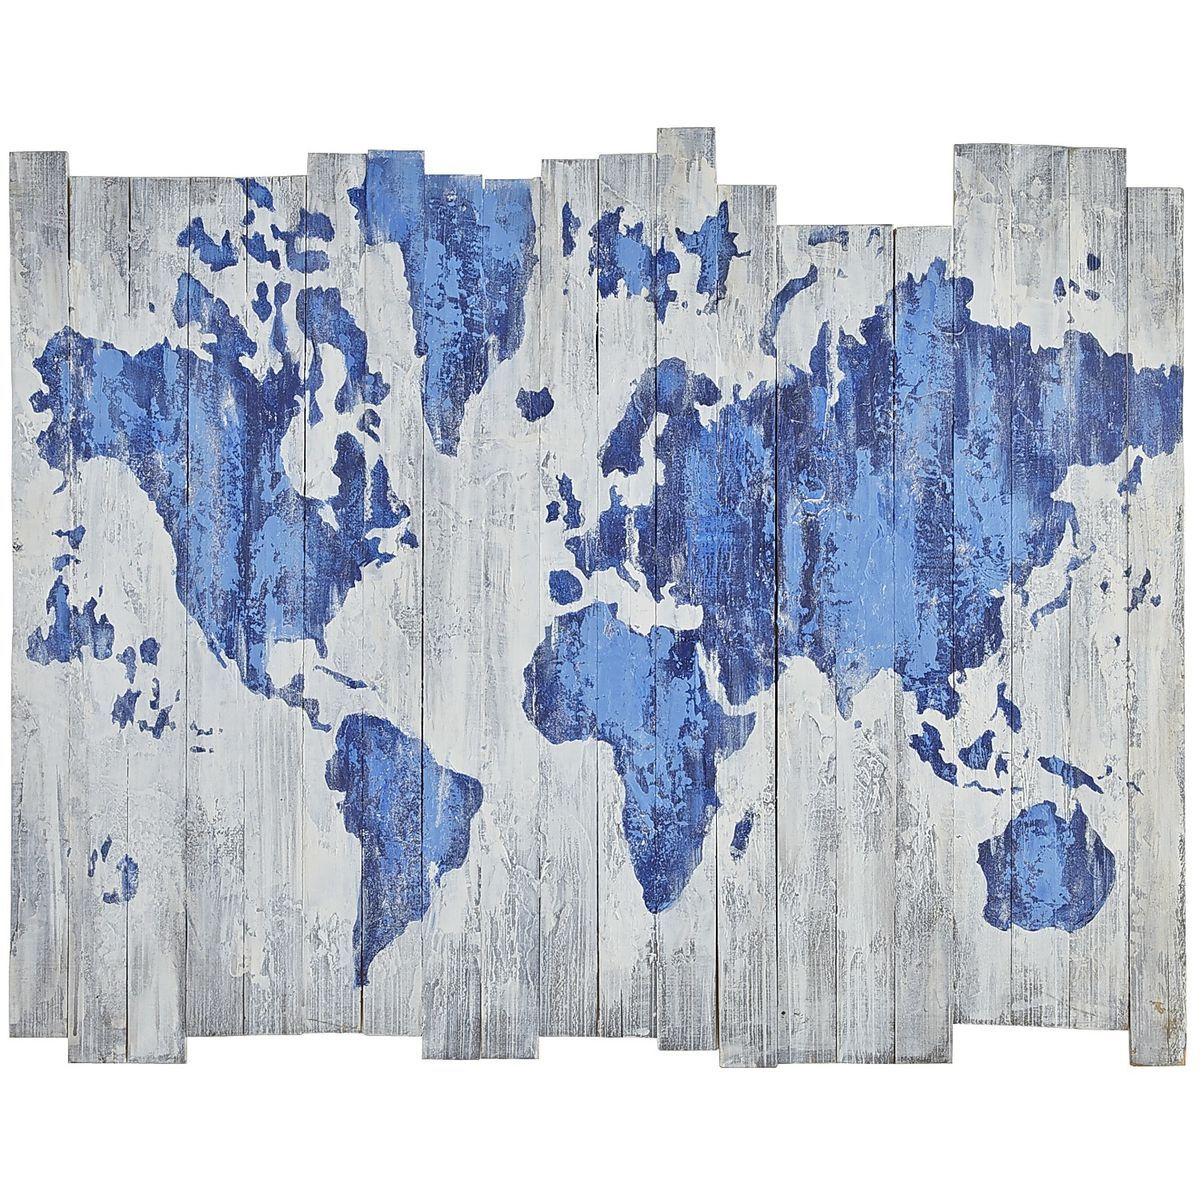 World map on wood planks pier 1 imports beach house pinterest world map on wood planks pier 1 imports gumiabroncs Image collections